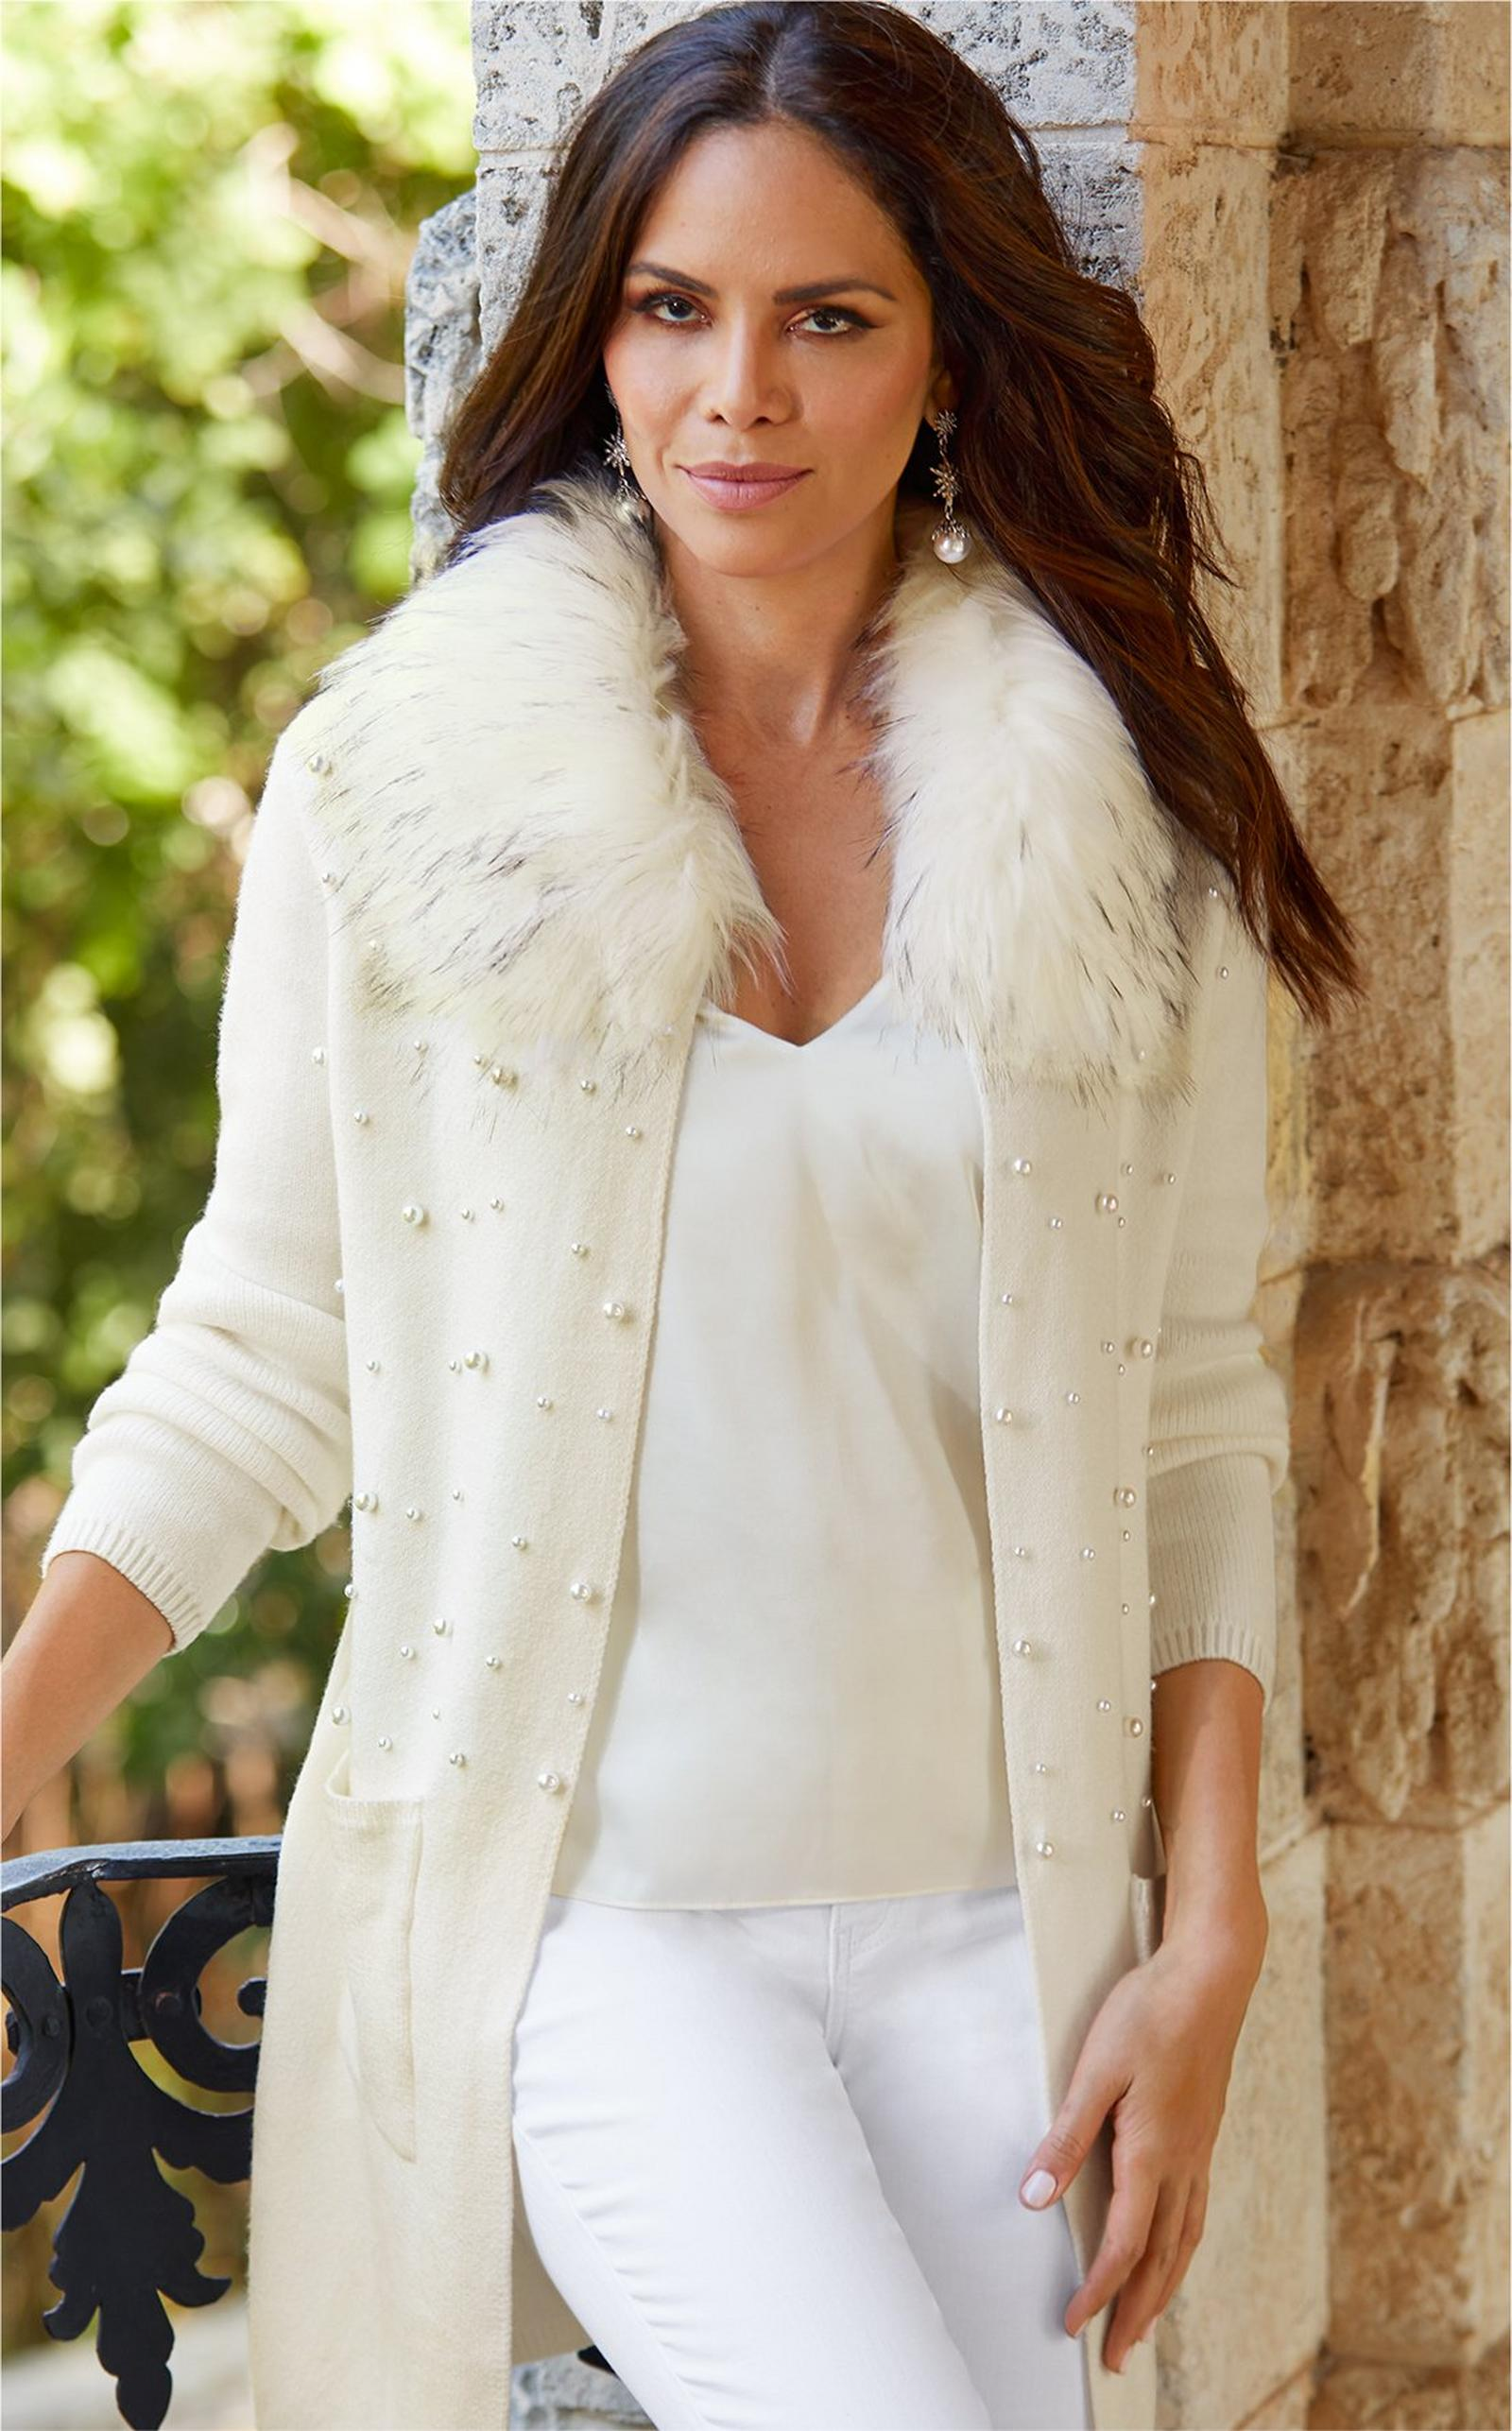 model wearing cream colored faux fur embellished cardigan over cream tank top and white jeans.